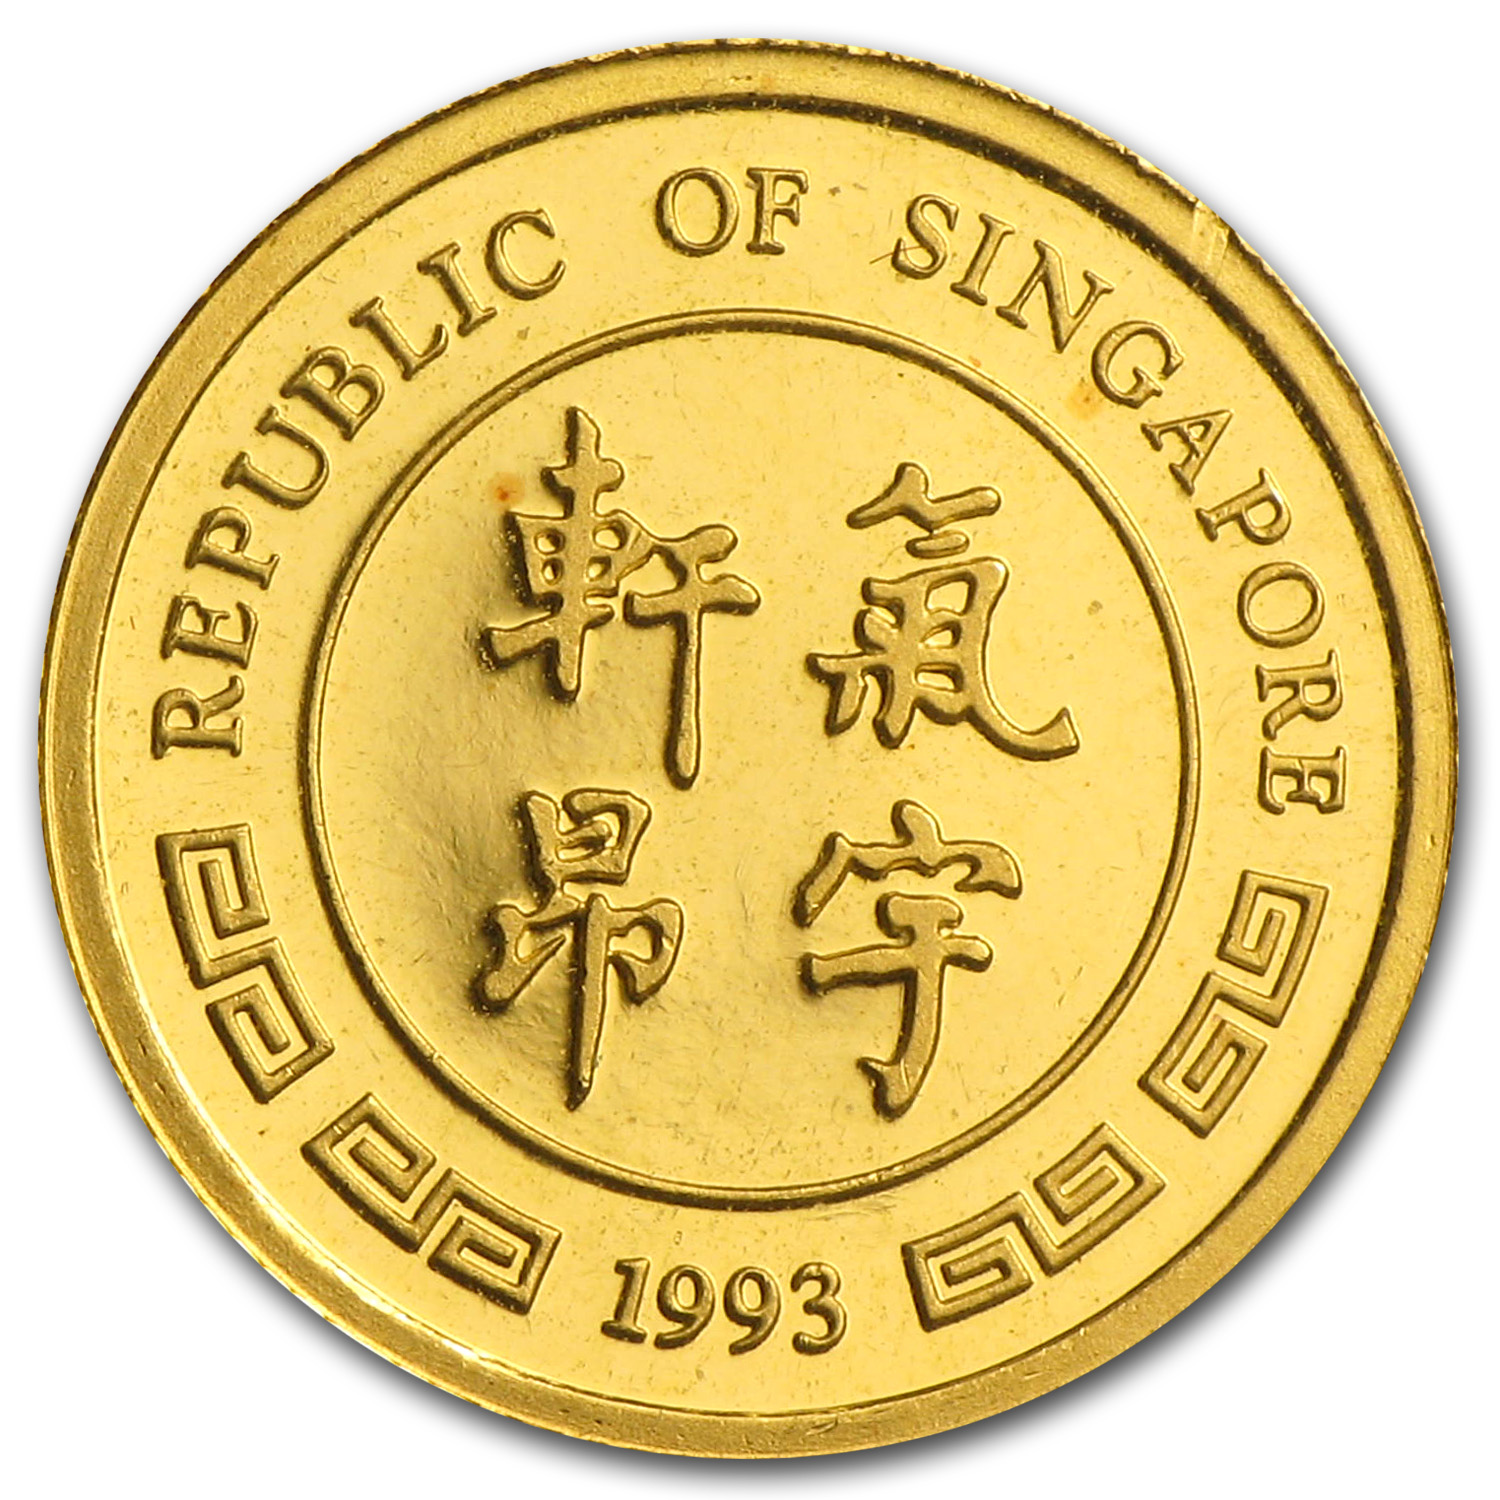 1993 Singapore 1/20 oz Proof Gold 5 Singold Rooster